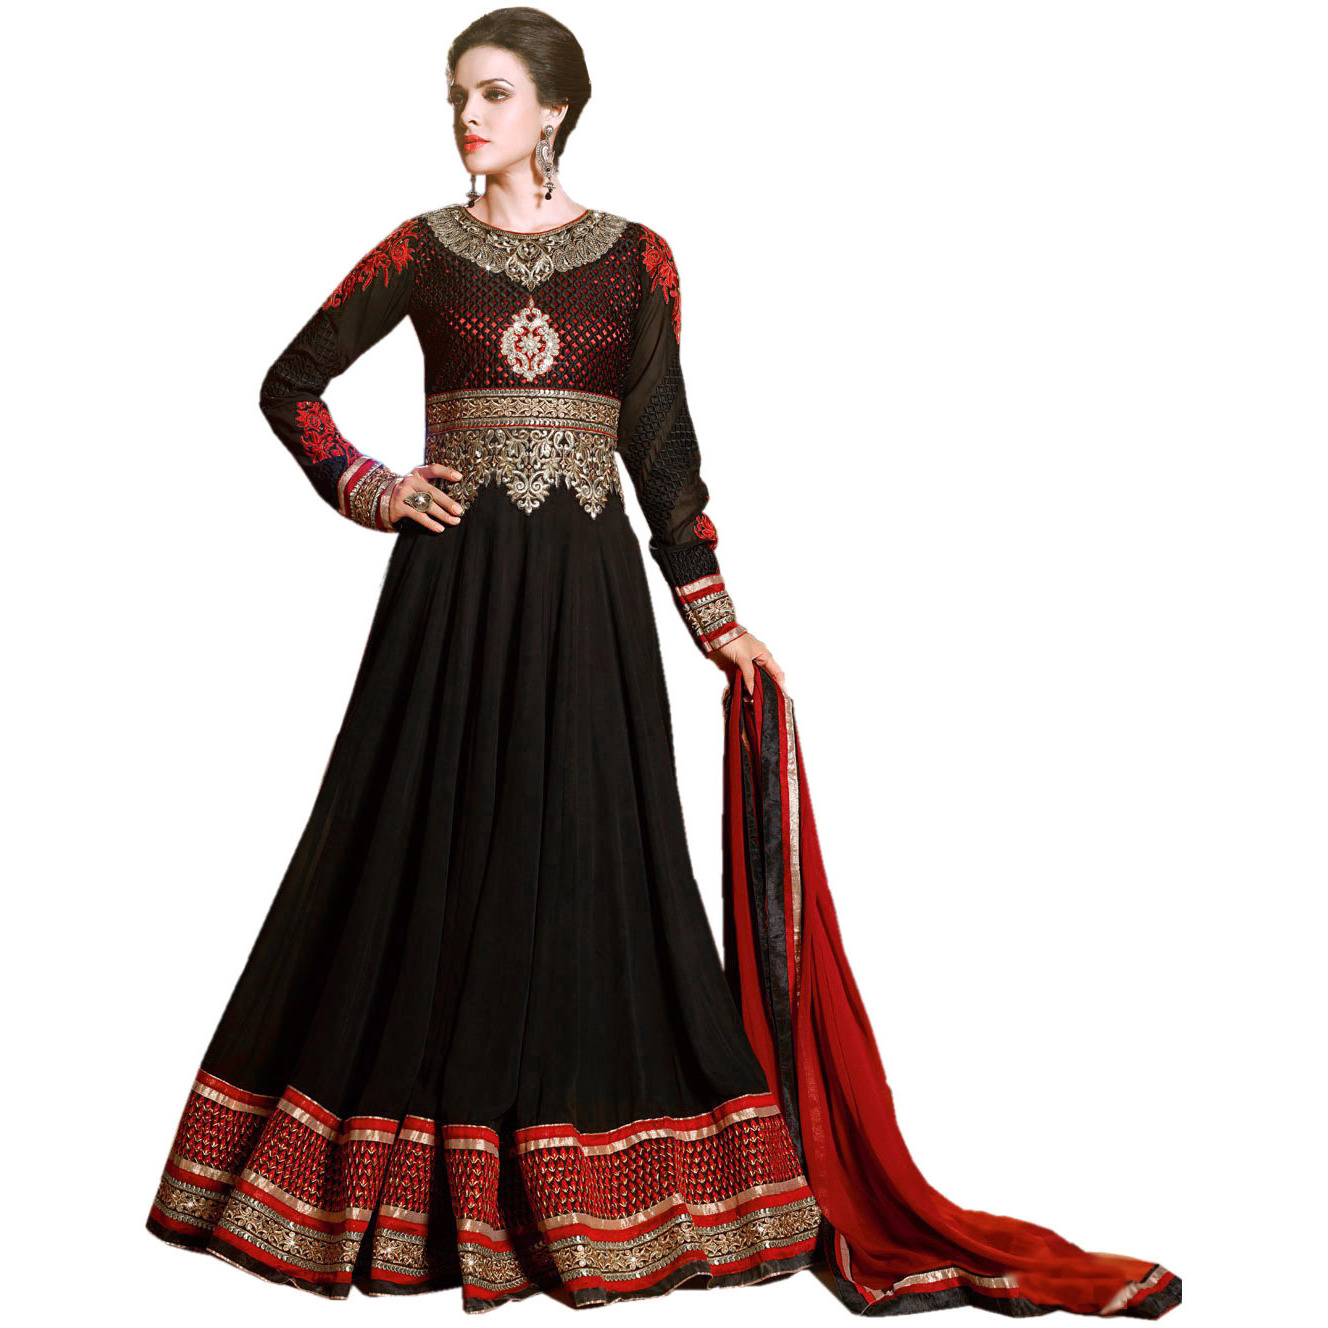 Jet-Black Wedding Long Anarkali Suit with Golden Embroidery and Zardosi Patch